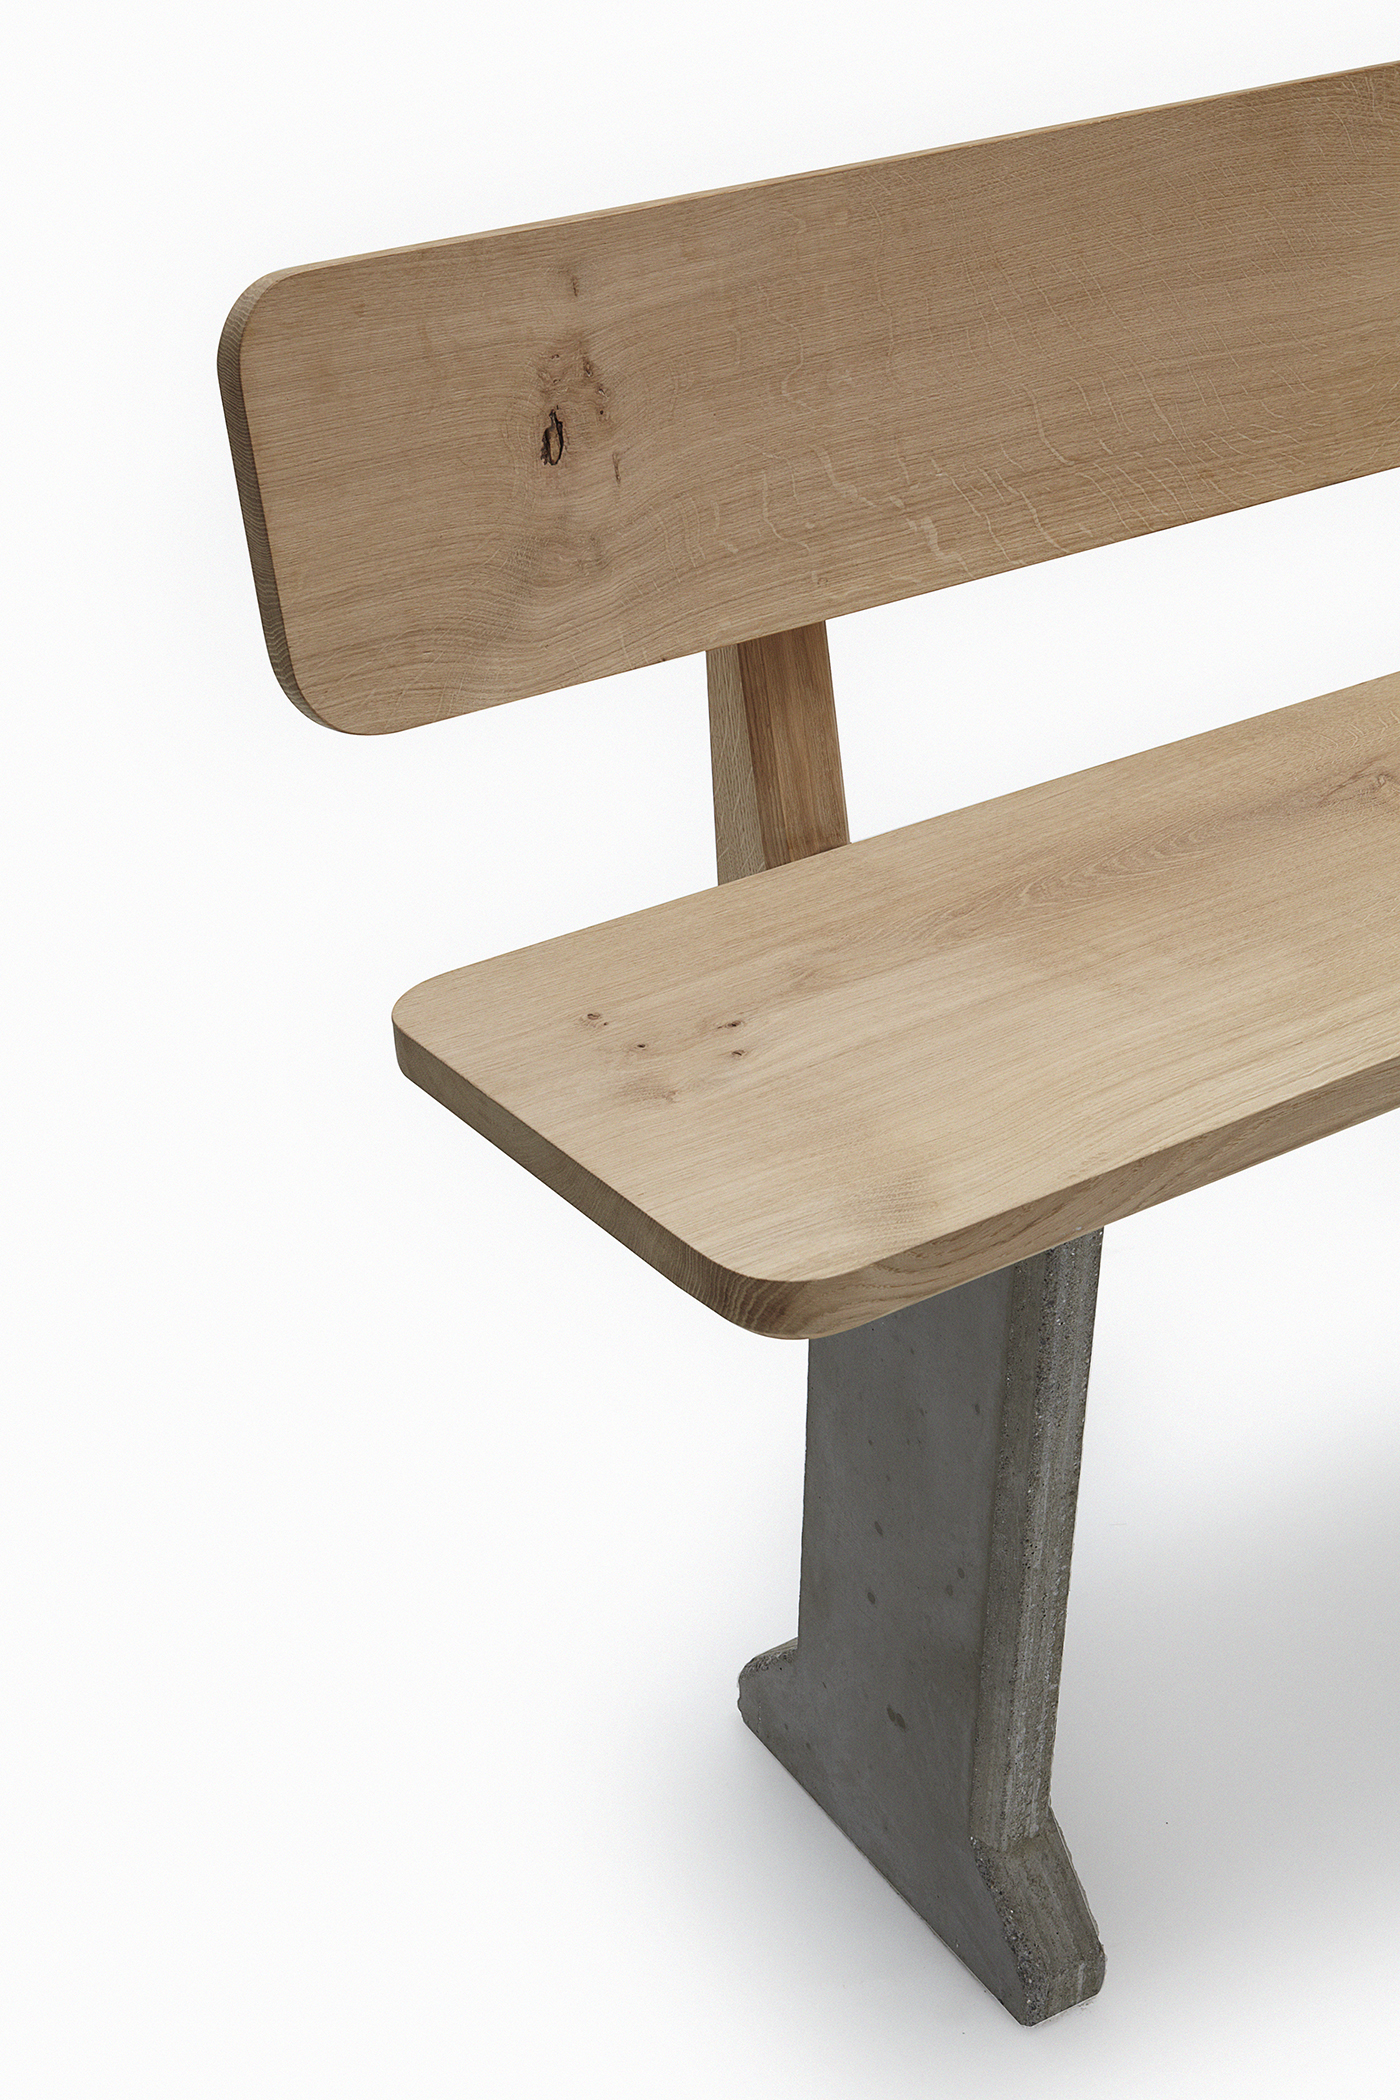 Design project - Loong Bench